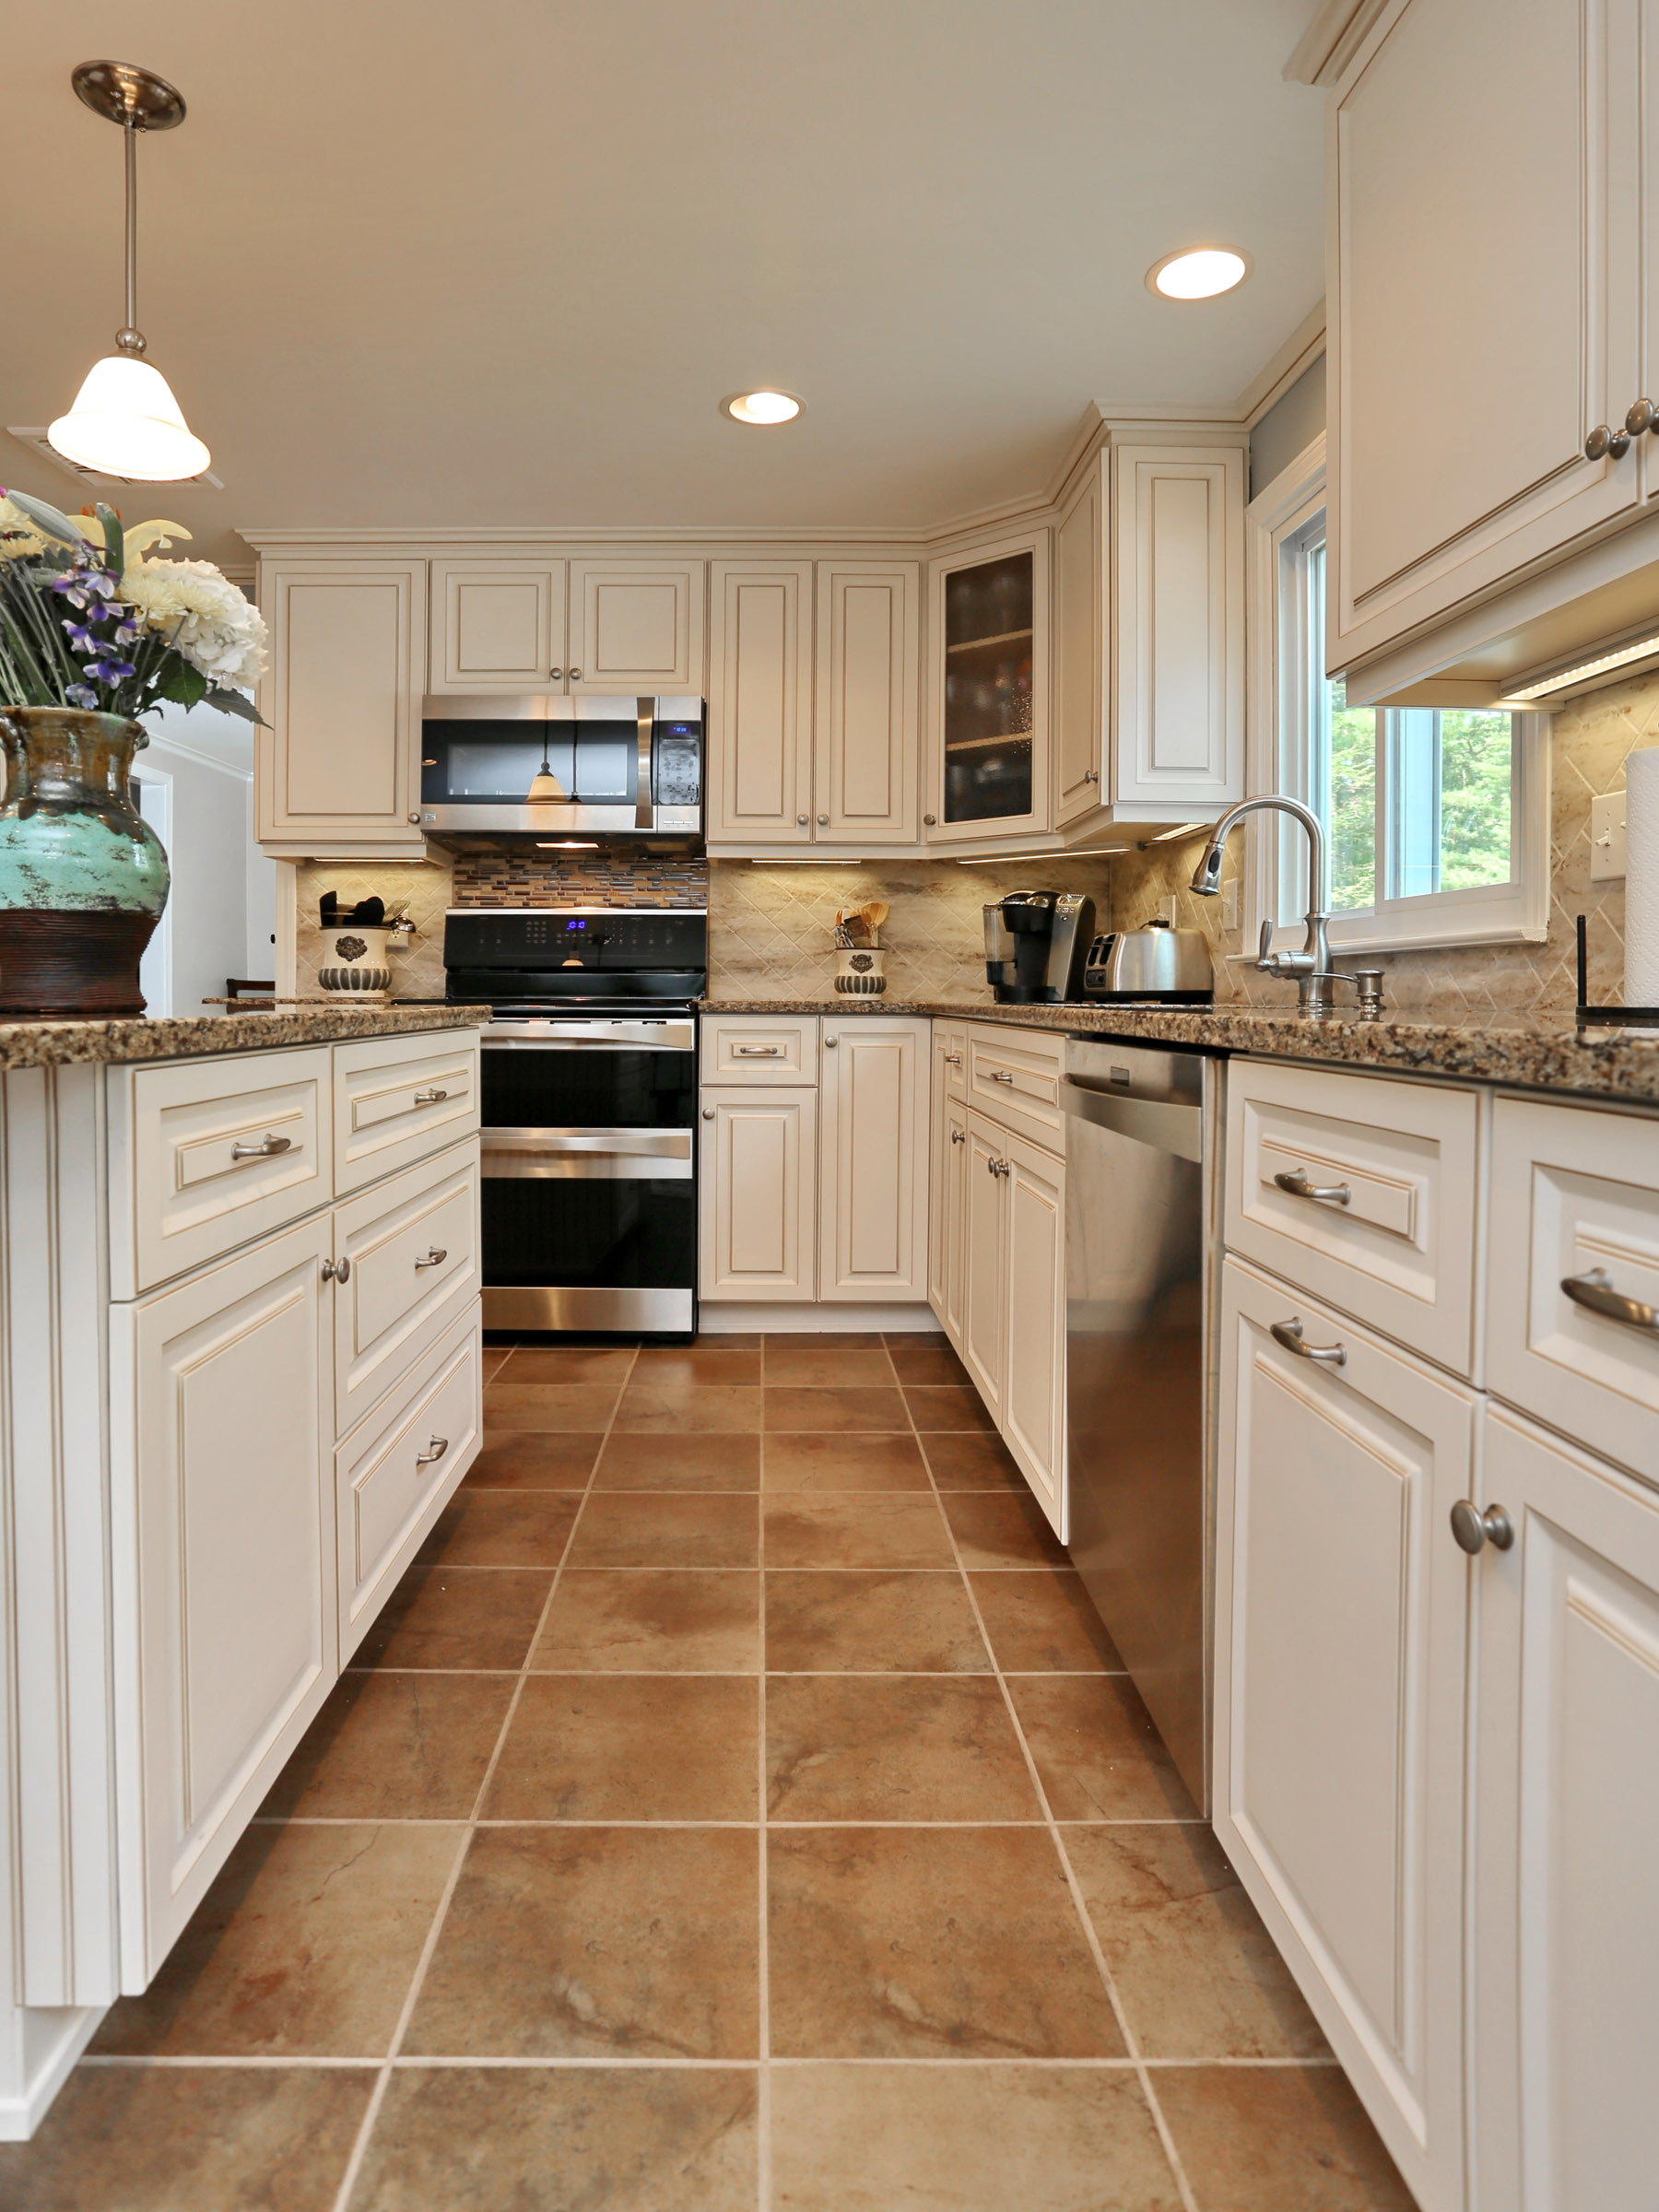 Have You Ever Seen a Canterbury Kitchen?